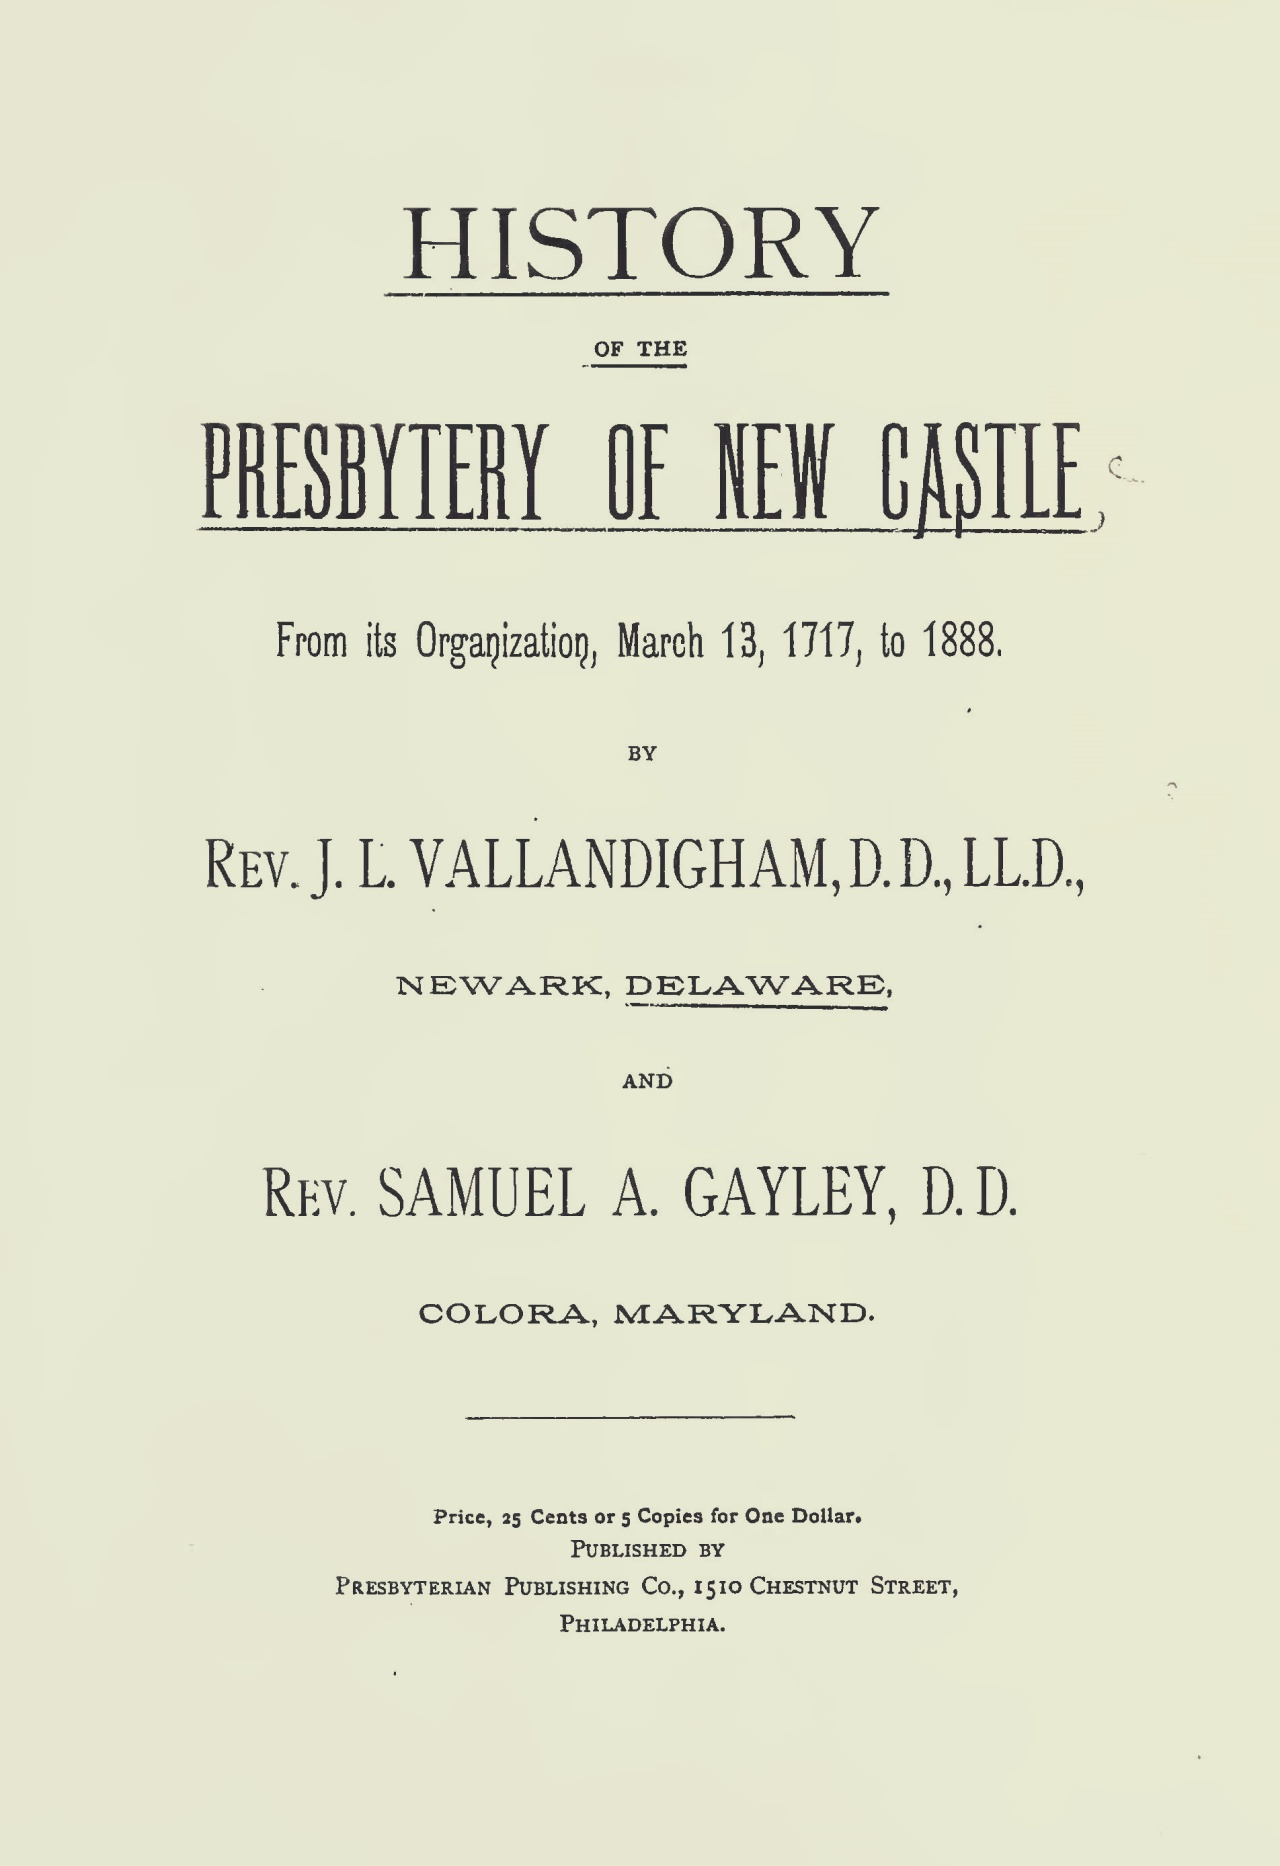 Vallandigham, James Laird, History of the Presbytery of New Castle Title Page.jpg